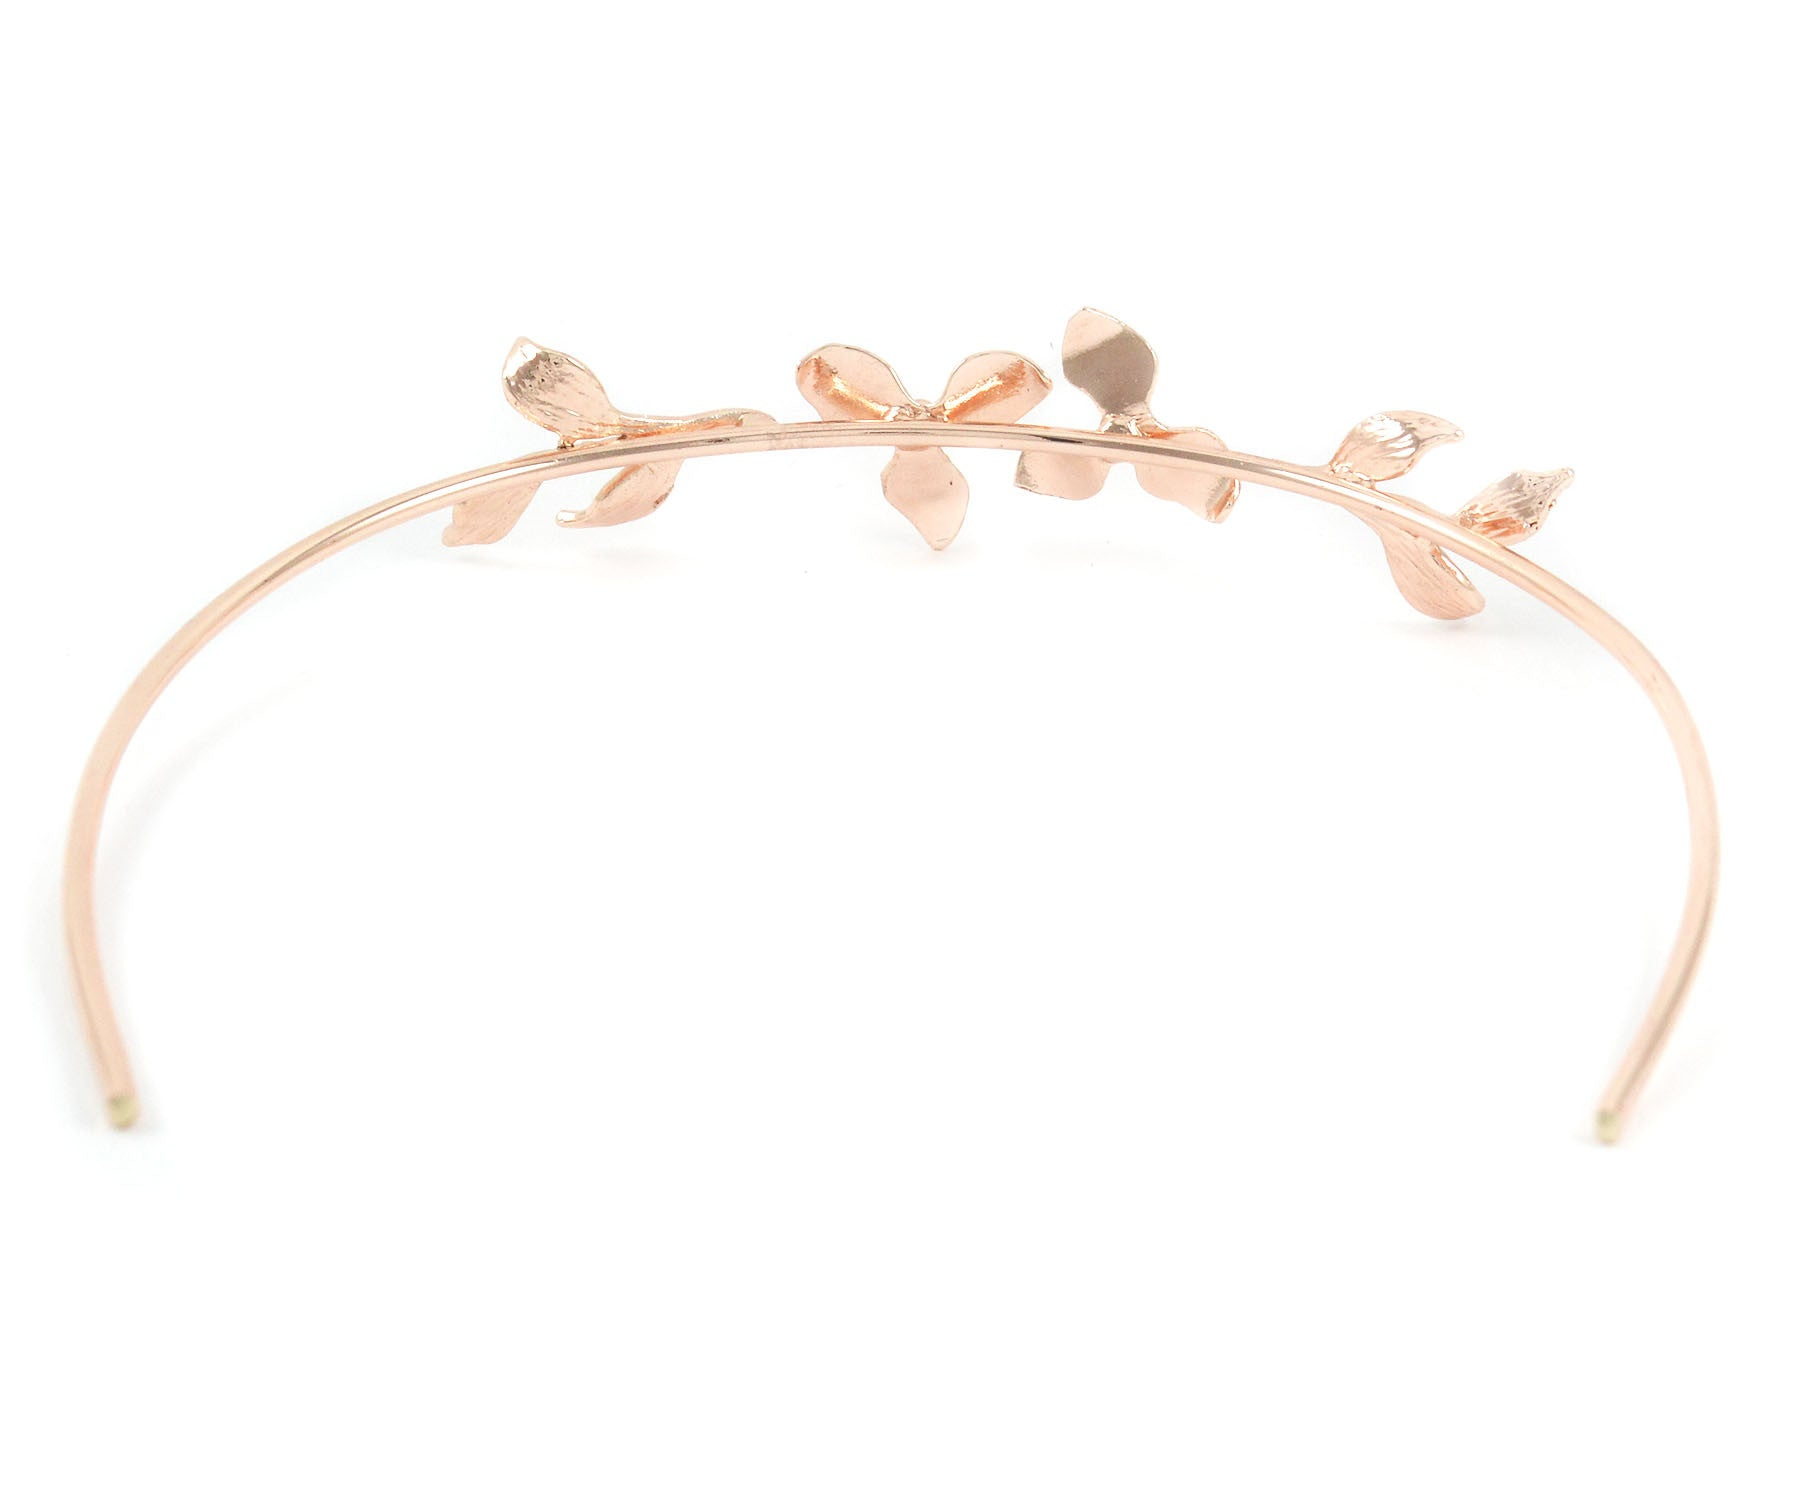 Floral Halo, Metal Floral Halo, Handcrafted Halo, Handmade Halo, Lasercut Halo, Rosegold Halo